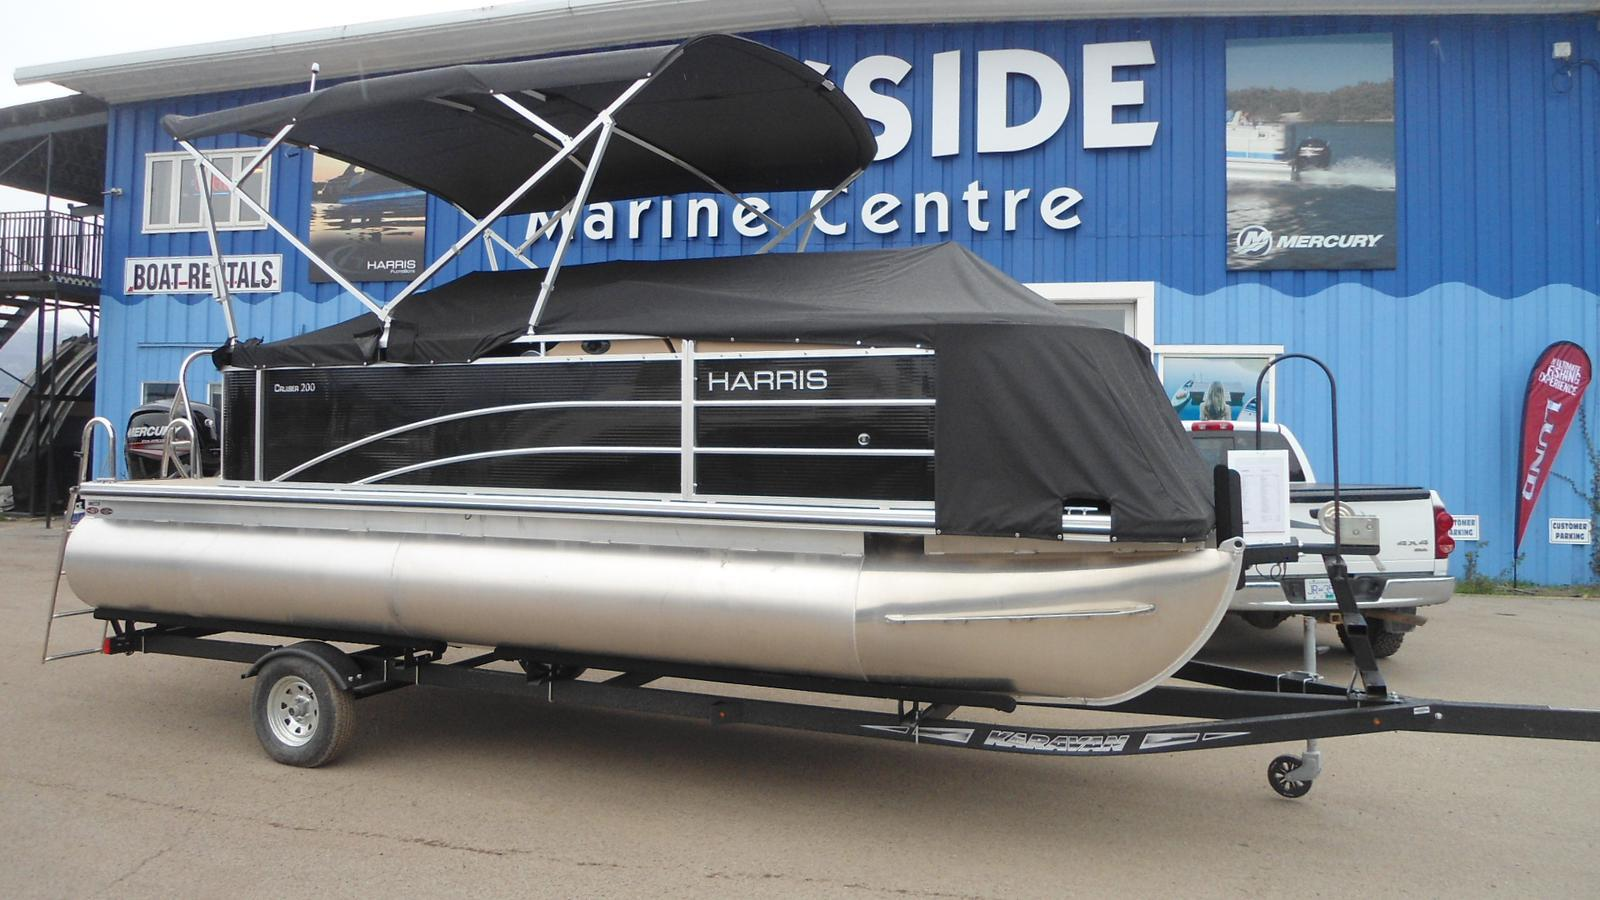 For Sale: 2016 Harris Cruiser 200 90hp 21ft<br/>Dockside Marine Centre, LTD.